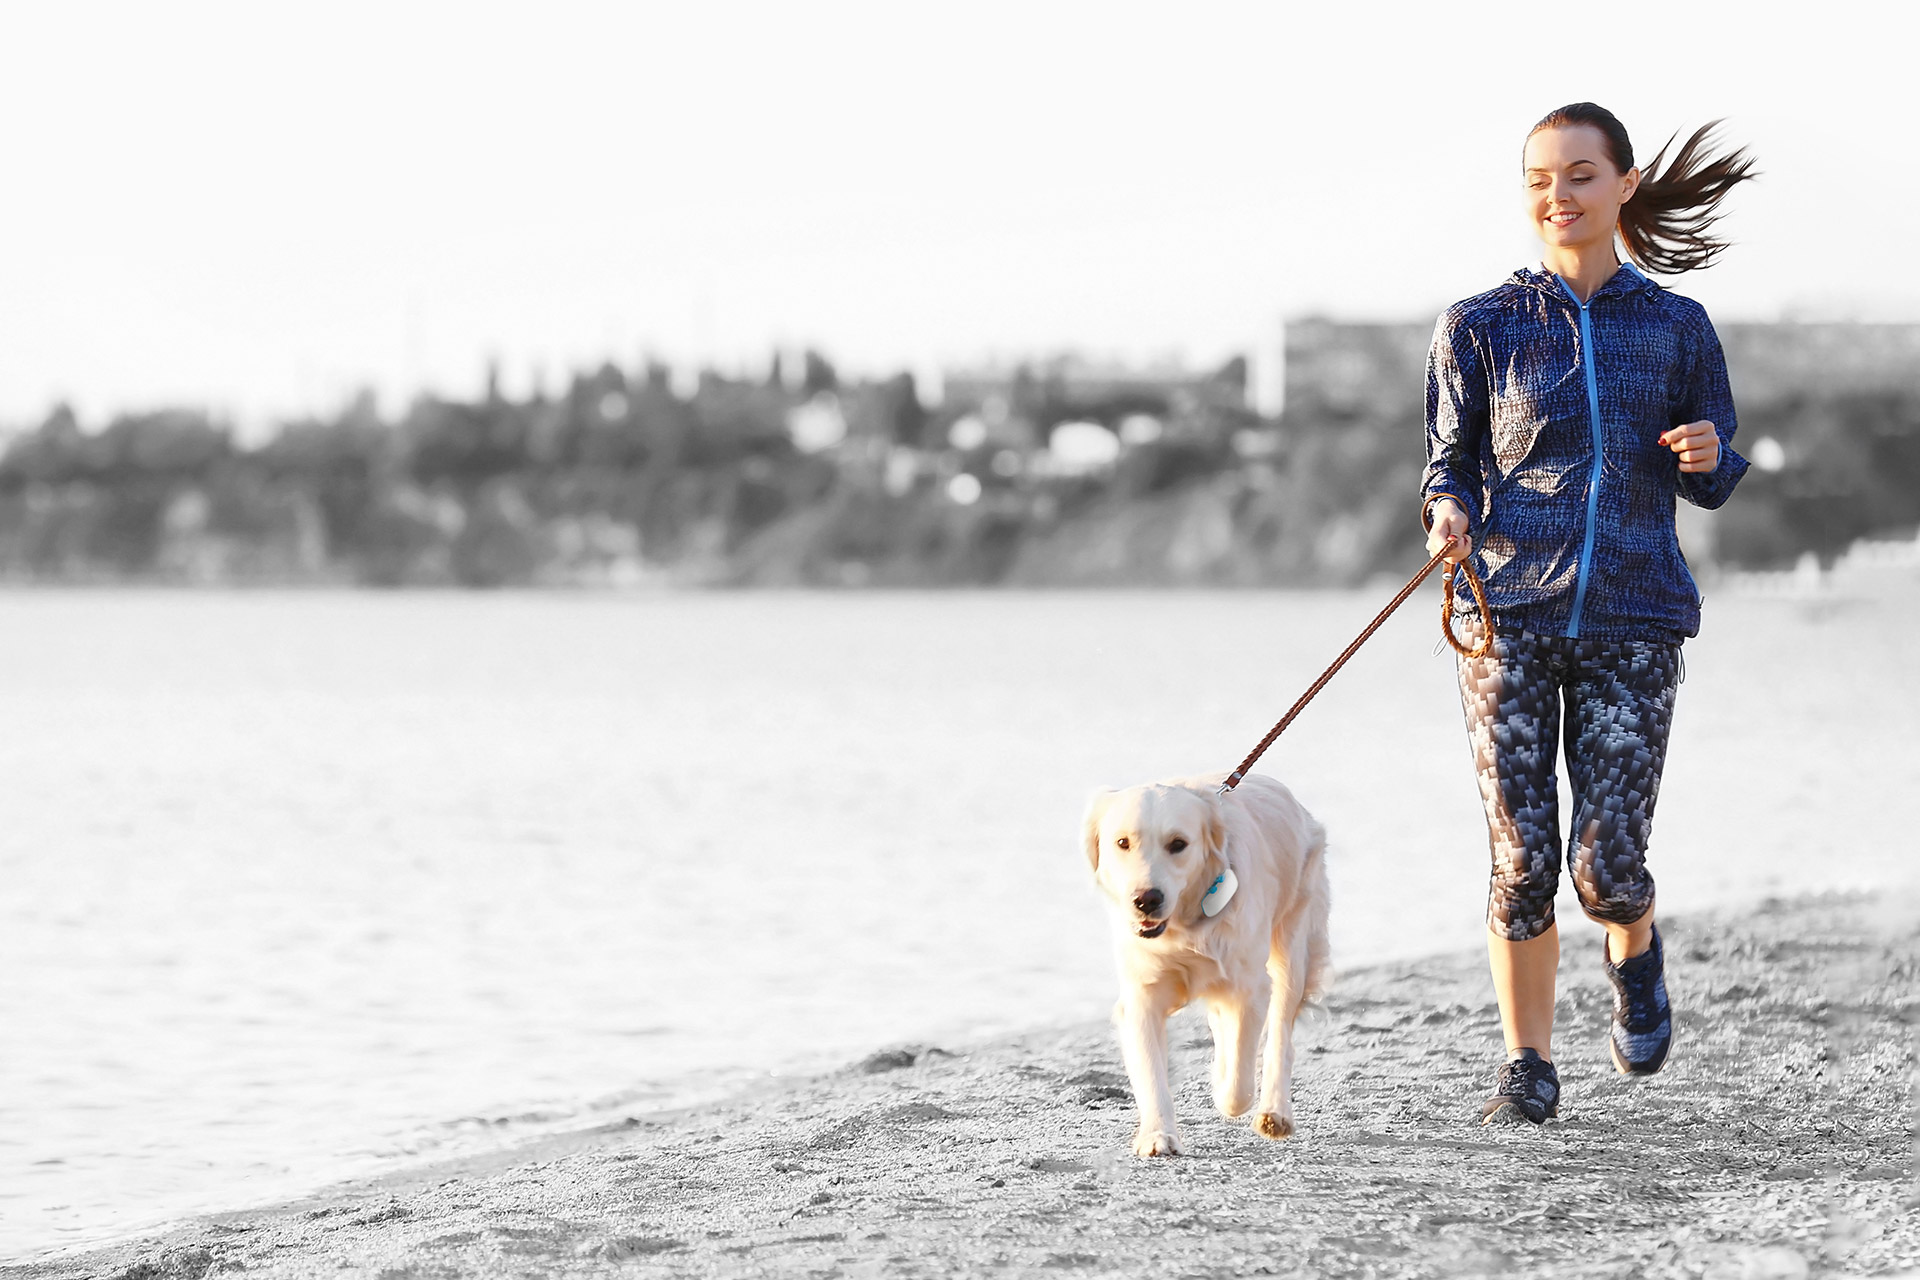 Woman running outdoors with dog on leash